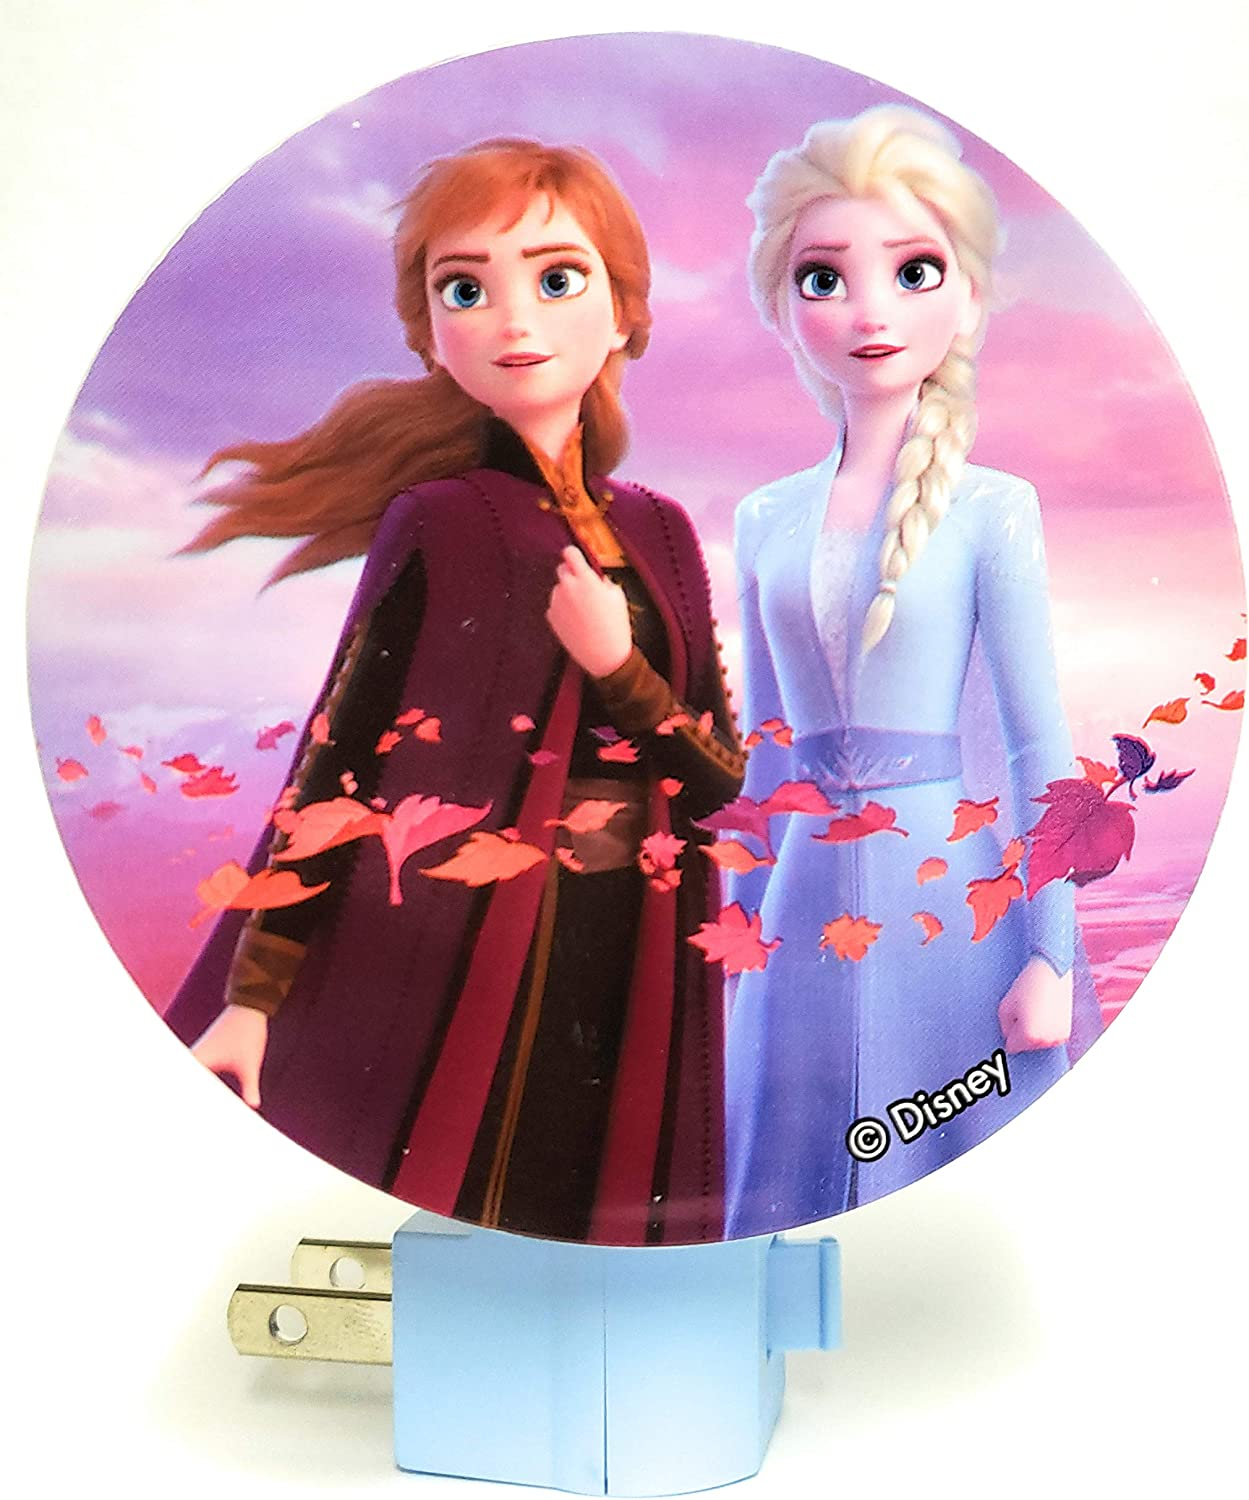 Disney Frozen II Led Night Light - Featuring Elsa and Anna - Enchanted Forrest Edition